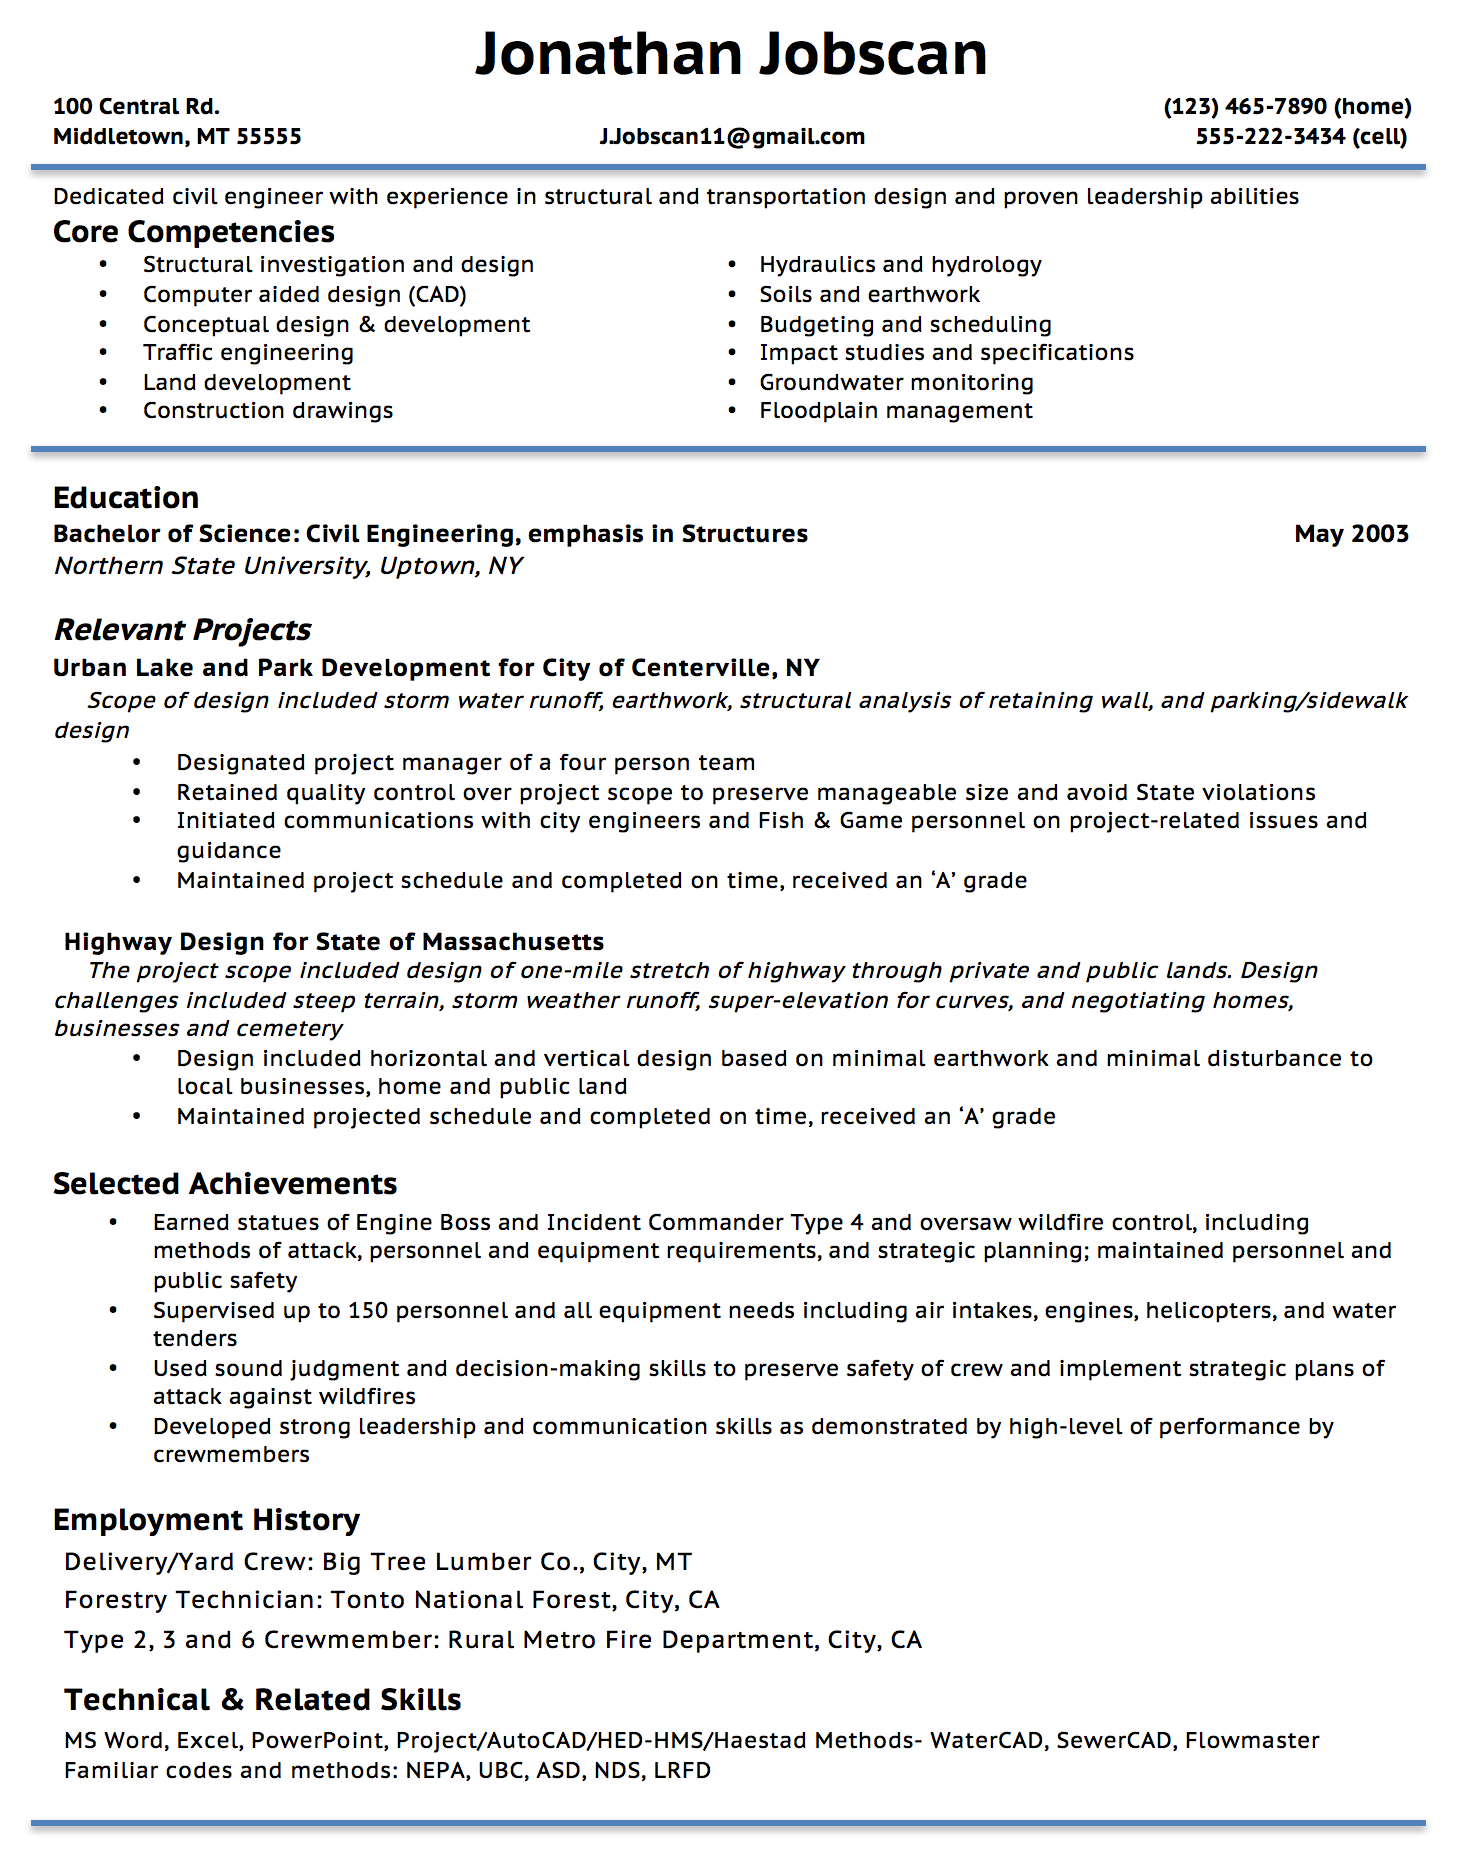 Opposenewapstandardsus  Terrific Resume Writing Guide  Jobscan With Great Example Of A Functional Resume Format With Agreeable Controller Resume Also Free Sample Resumes In Addition Legal Secretary Resume And Medical Assistant Resume Objective As Well As Medical Billing Resume Additionally Resumes Template From Jobscanco With Opposenewapstandardsus  Great Resume Writing Guide  Jobscan With Agreeable Example Of A Functional Resume Format And Terrific Controller Resume Also Free Sample Resumes In Addition Legal Secretary Resume From Jobscanco